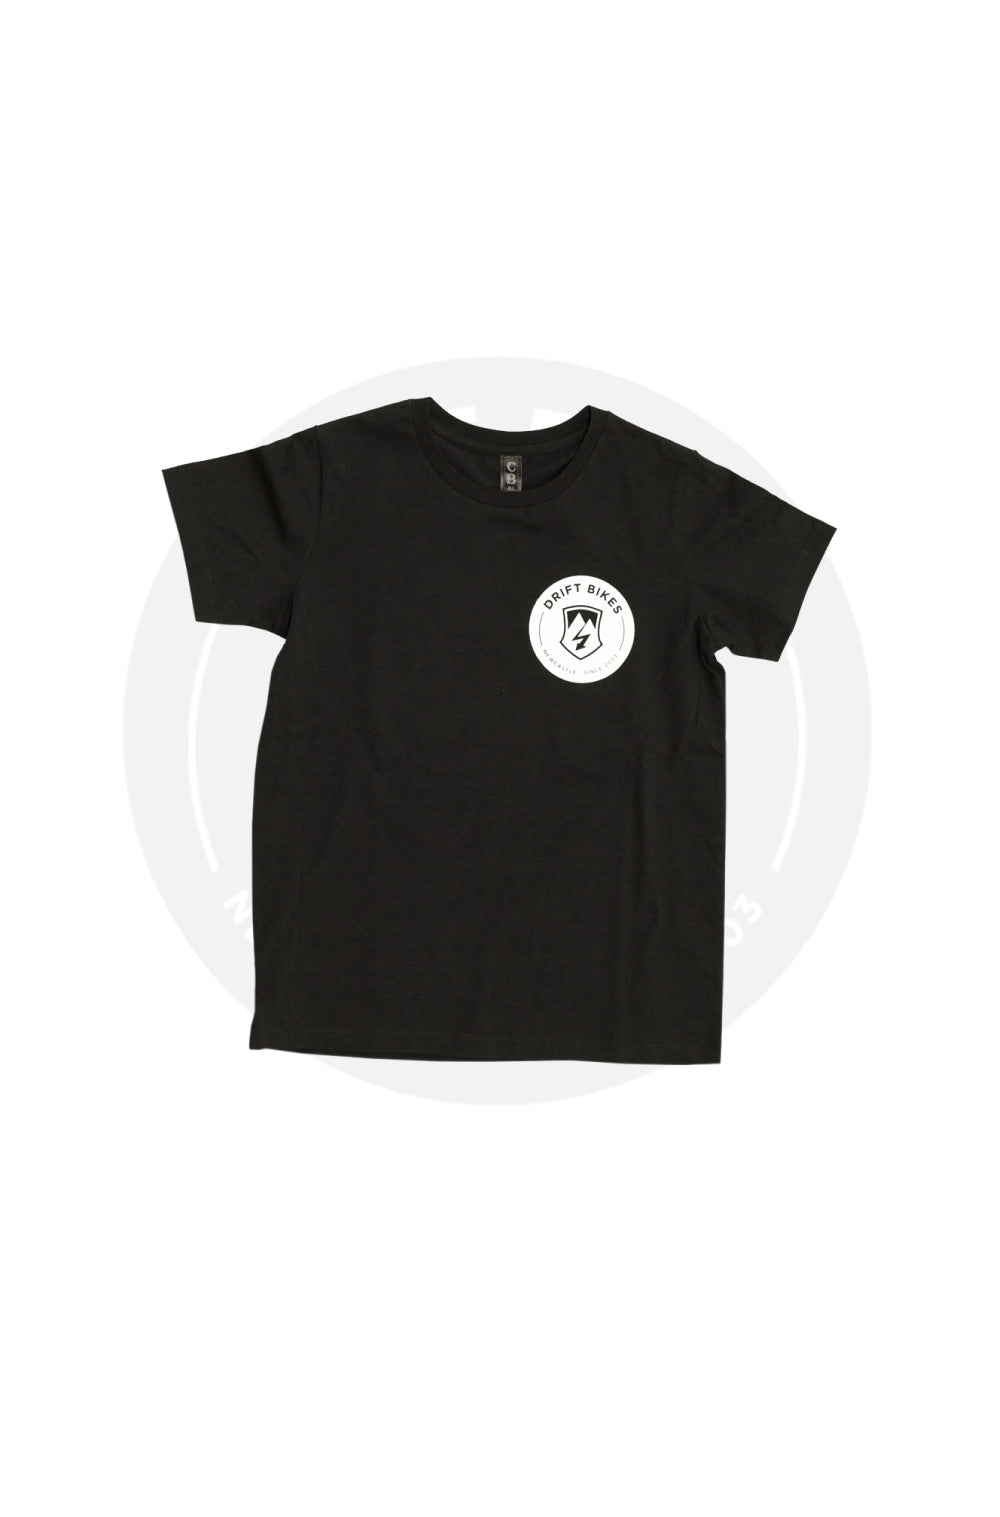 Drift Bikes Full Circle T-shirt Black